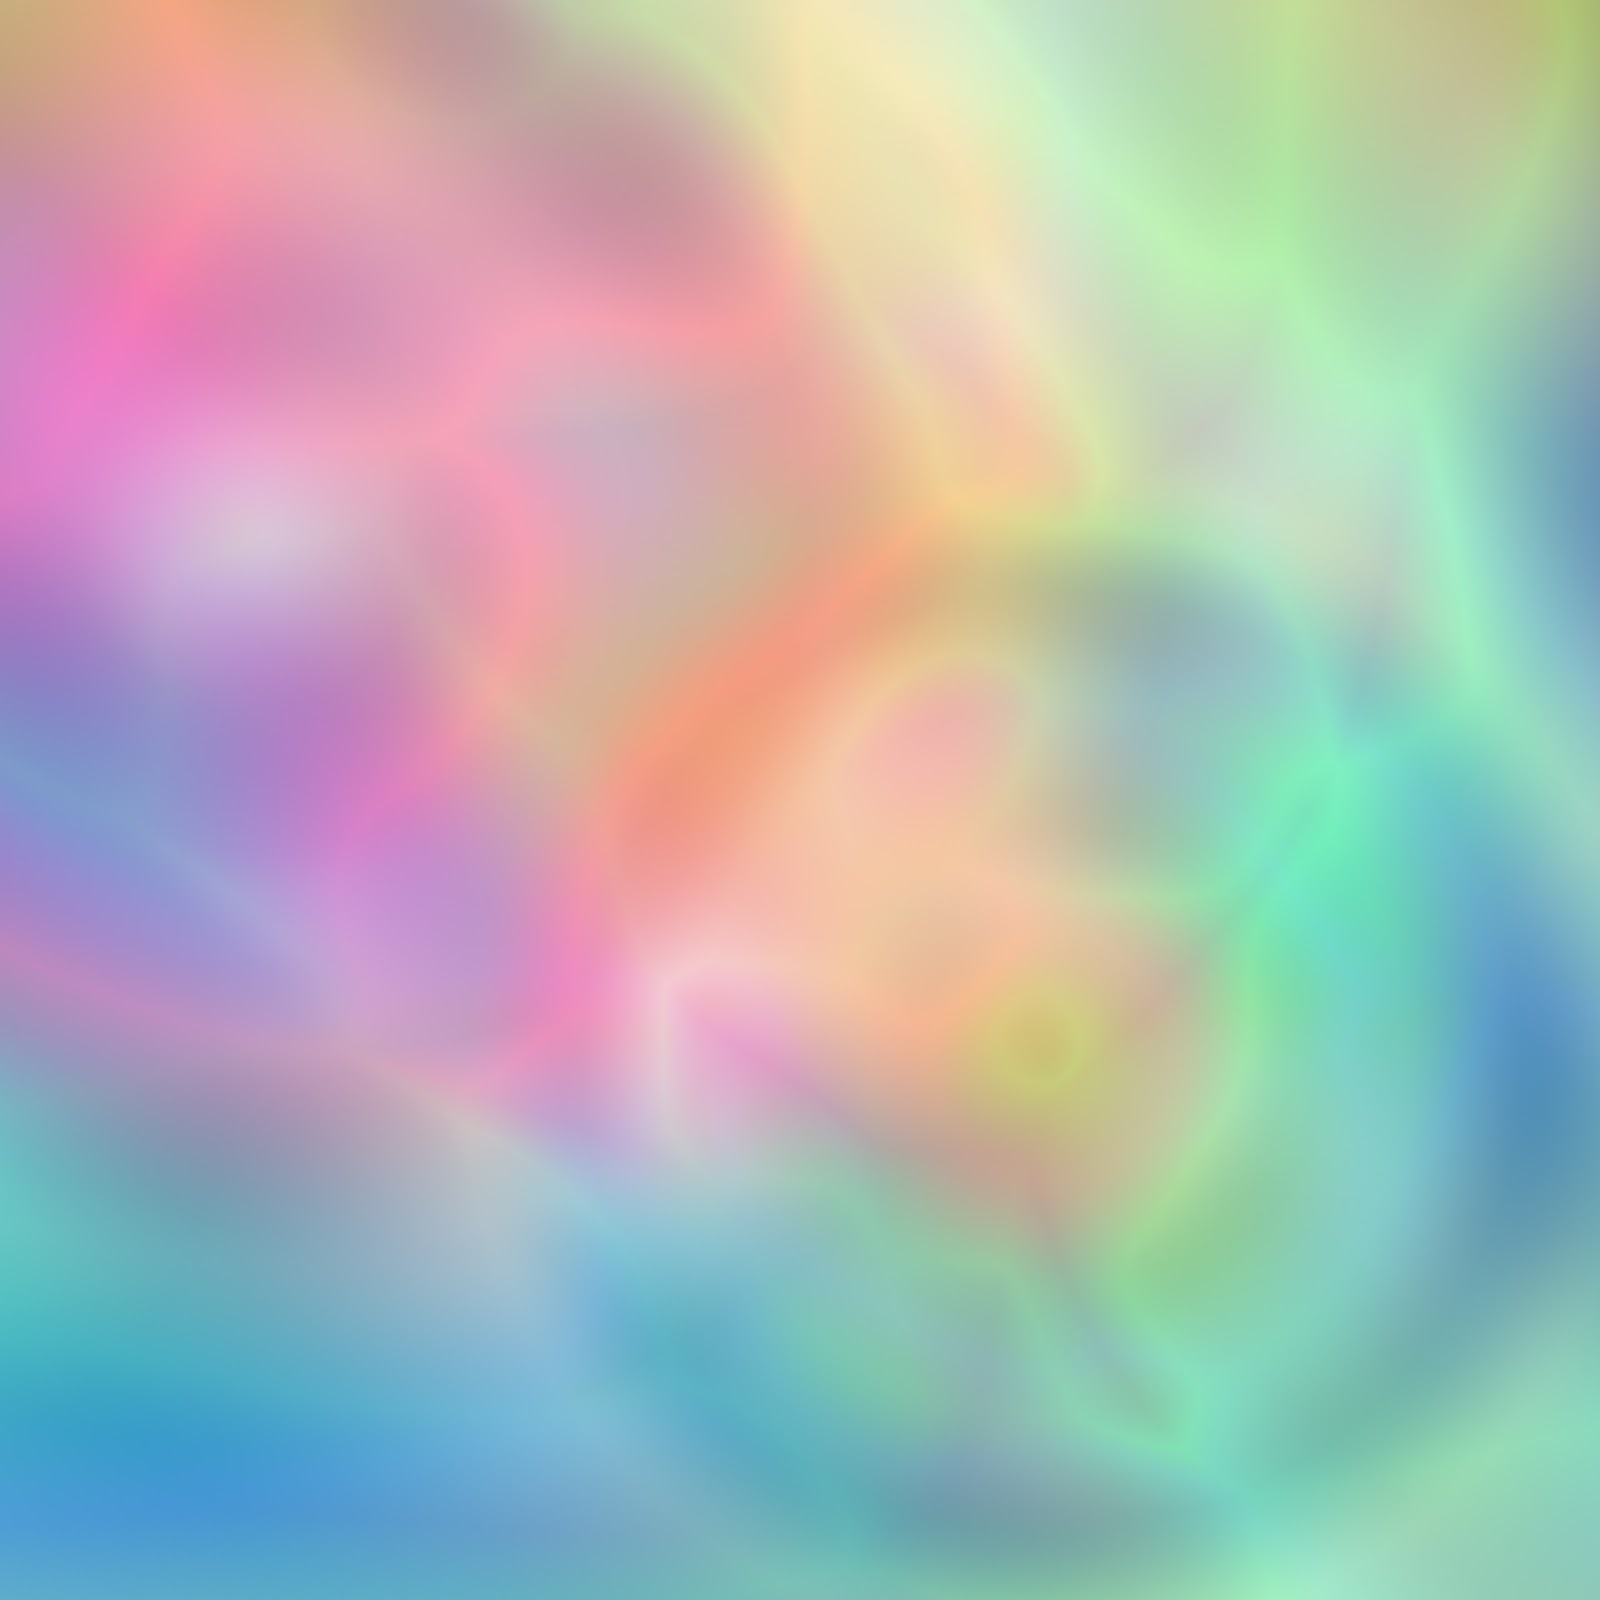 Background image o linear gradient - Ekduncan My Fanciful Muse Creating Abstract Backgrounds With The Gradient Tool Tutorial